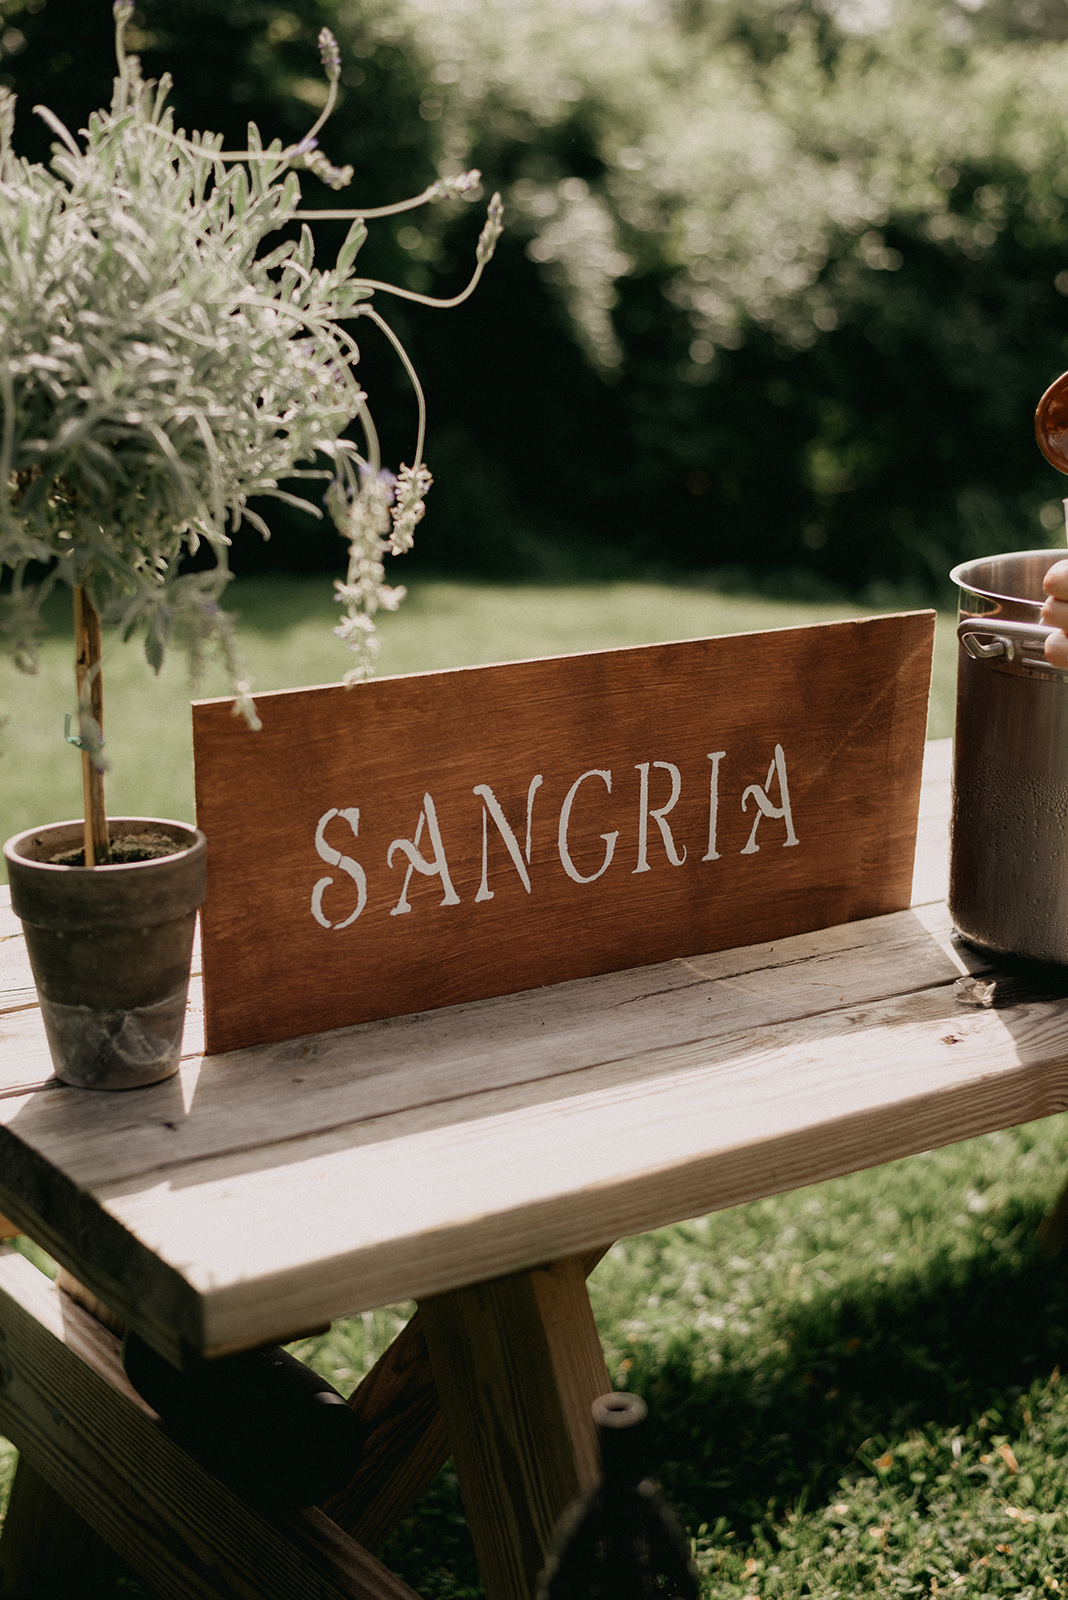 Beverage welcome bar for wedding guests. Sangria was the drink of choice! - Pearl Weddings & Events